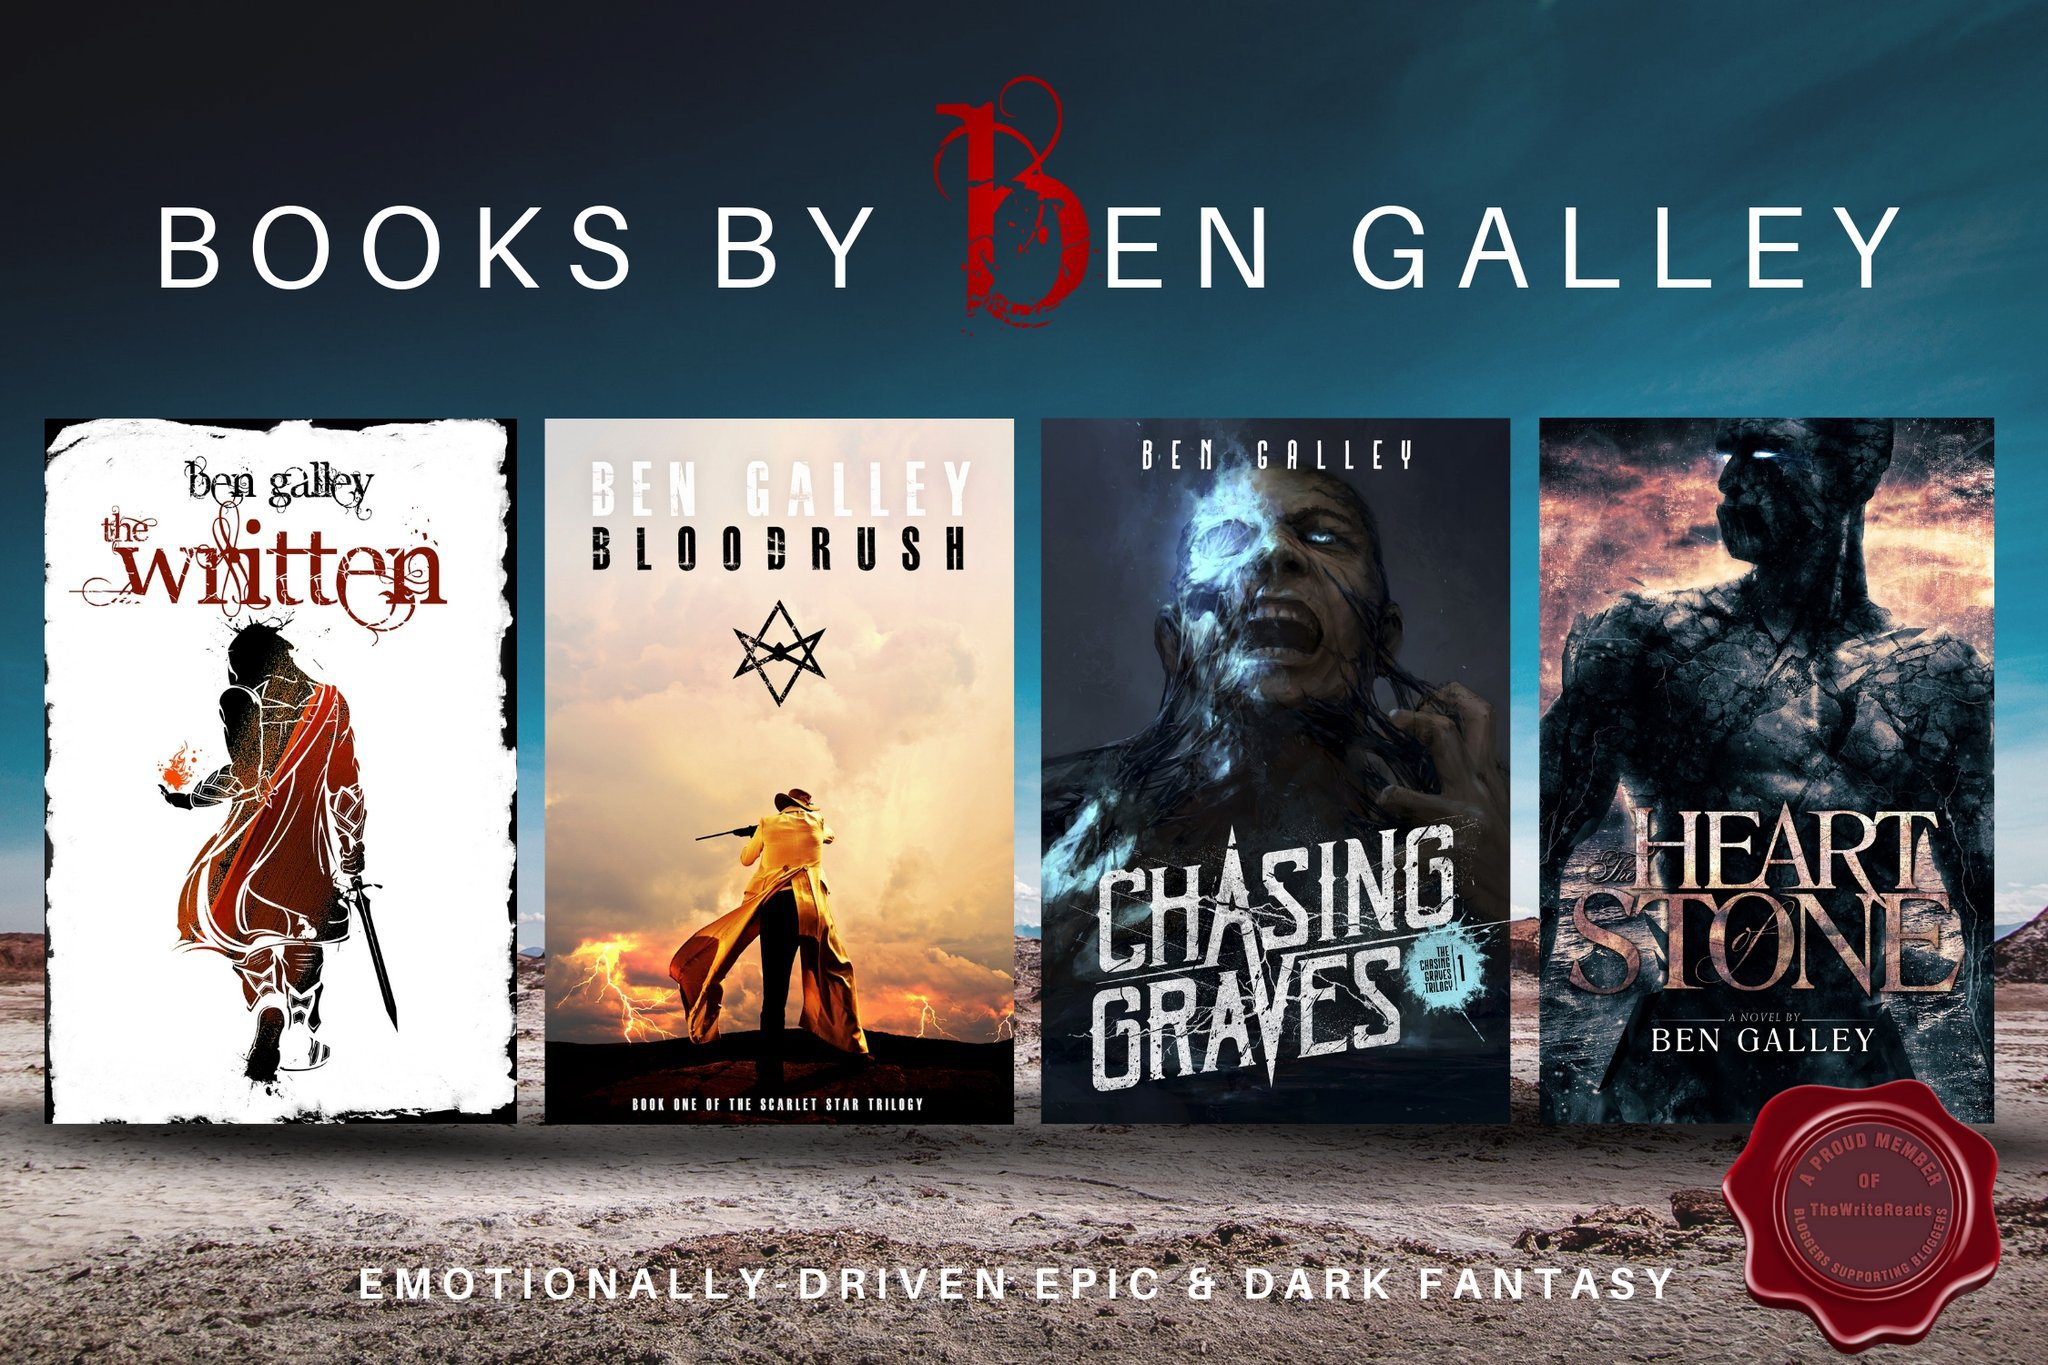 Interview with Ben Galley – Author of Chasing Graves